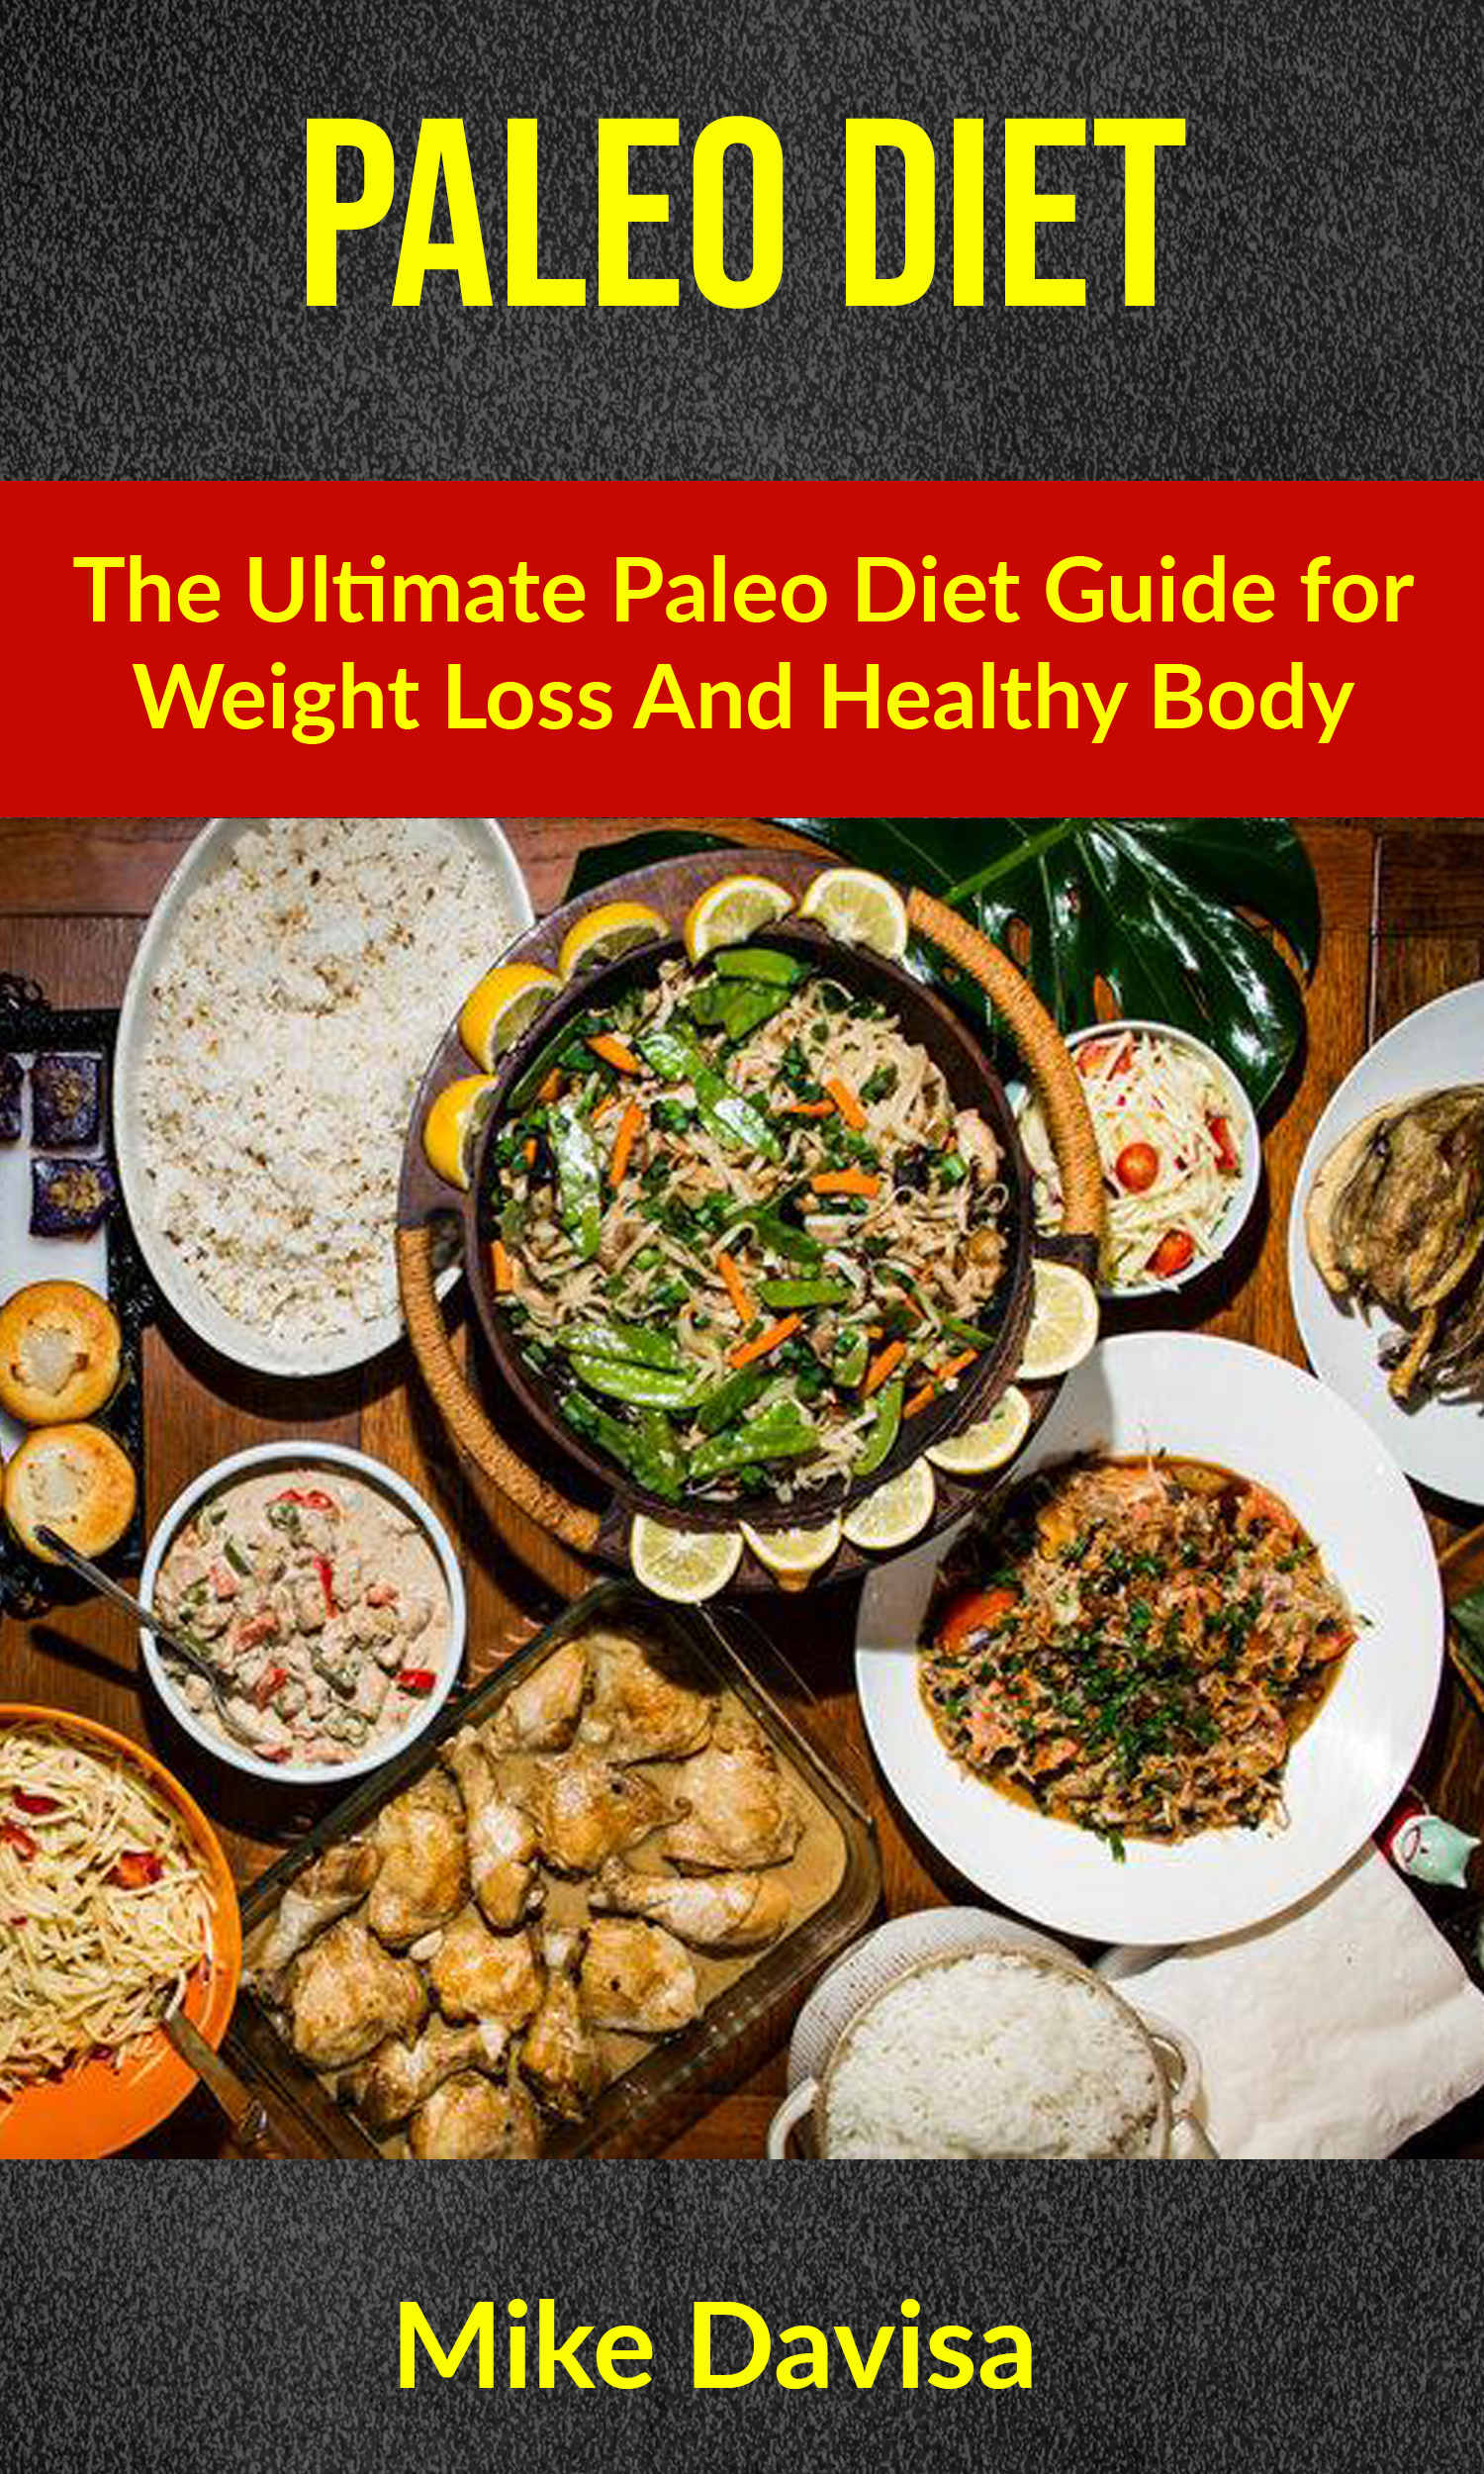 Paleo diet: the ultimate paleo diet guide for weight loss and healthy body